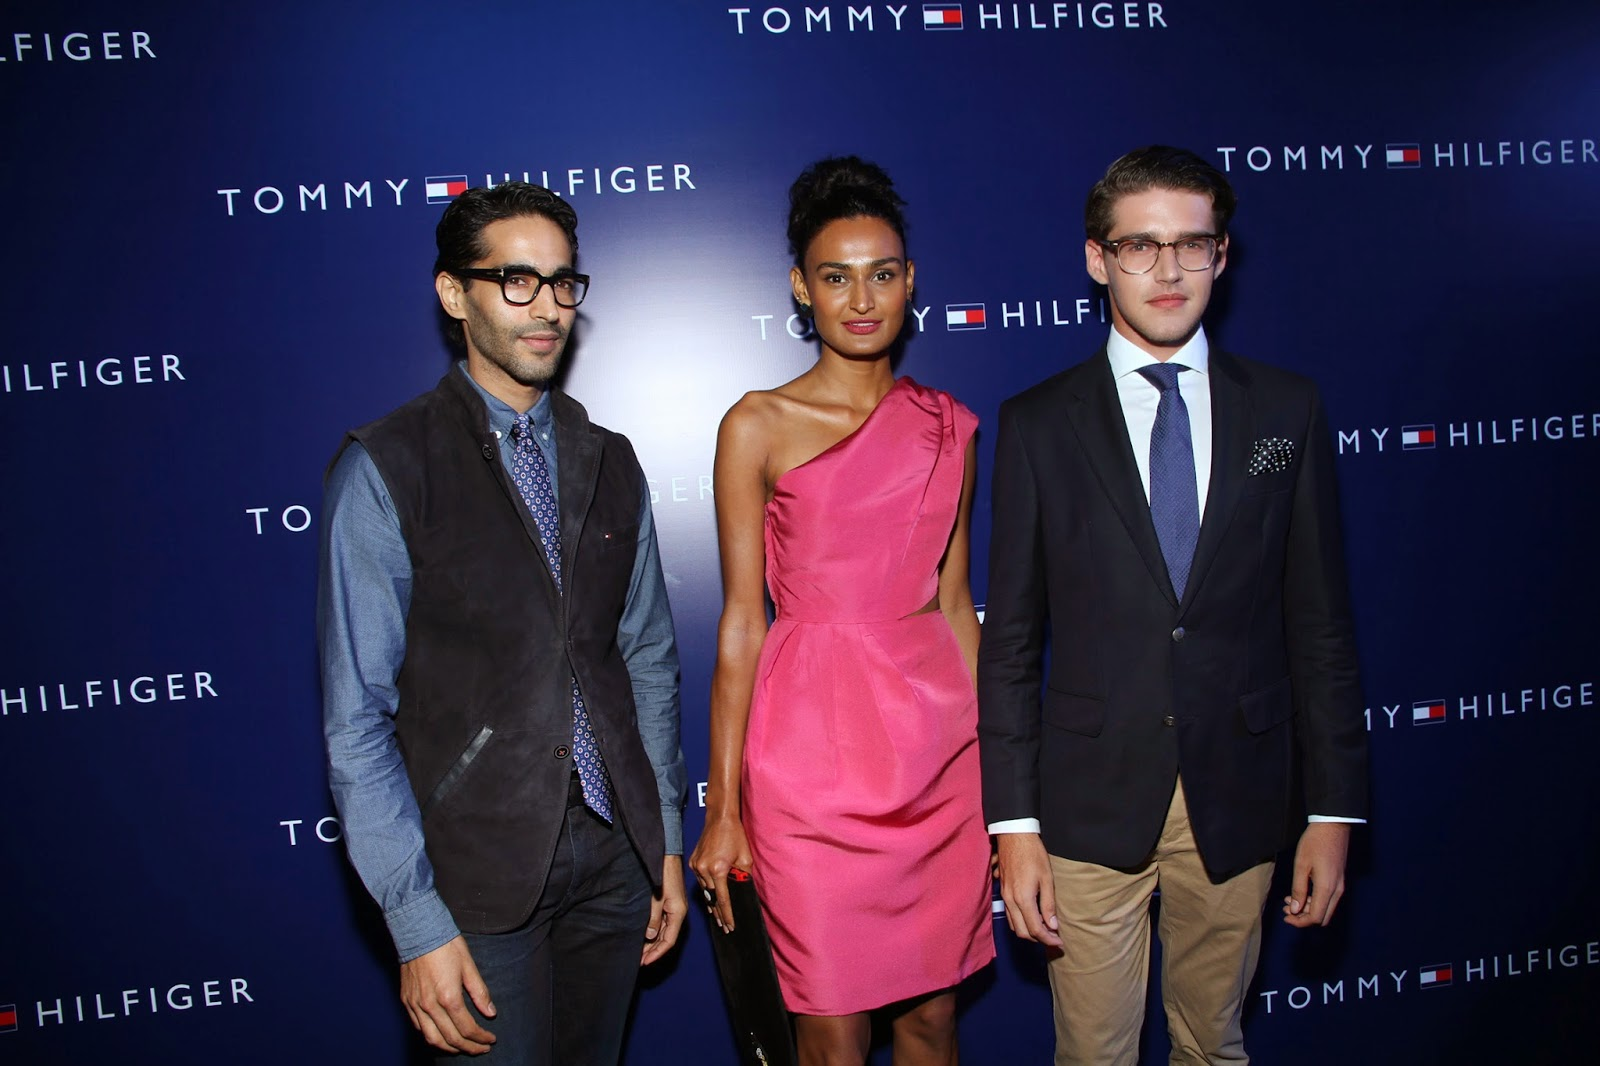 17ee7ba6 TOMMY HILFIGER CELEBRATES 10TH ANNIVERSARY IN INDIA WITH EXCLUSIVE PARTY IN  NEW DELHI